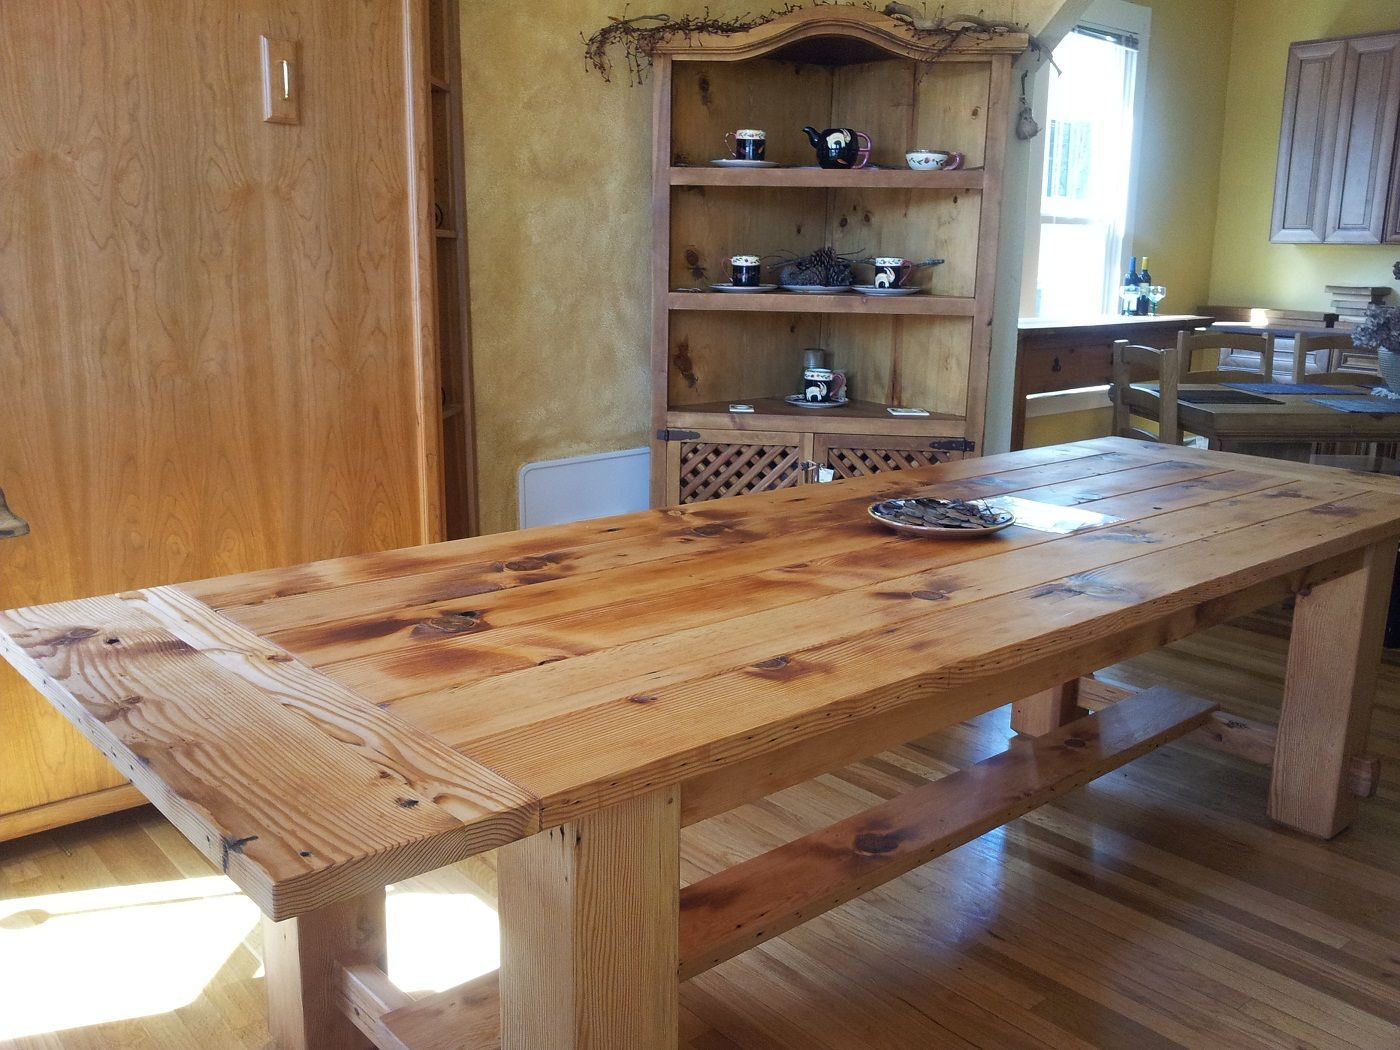 Painting of Real Wood Dining Table Review Kiefer